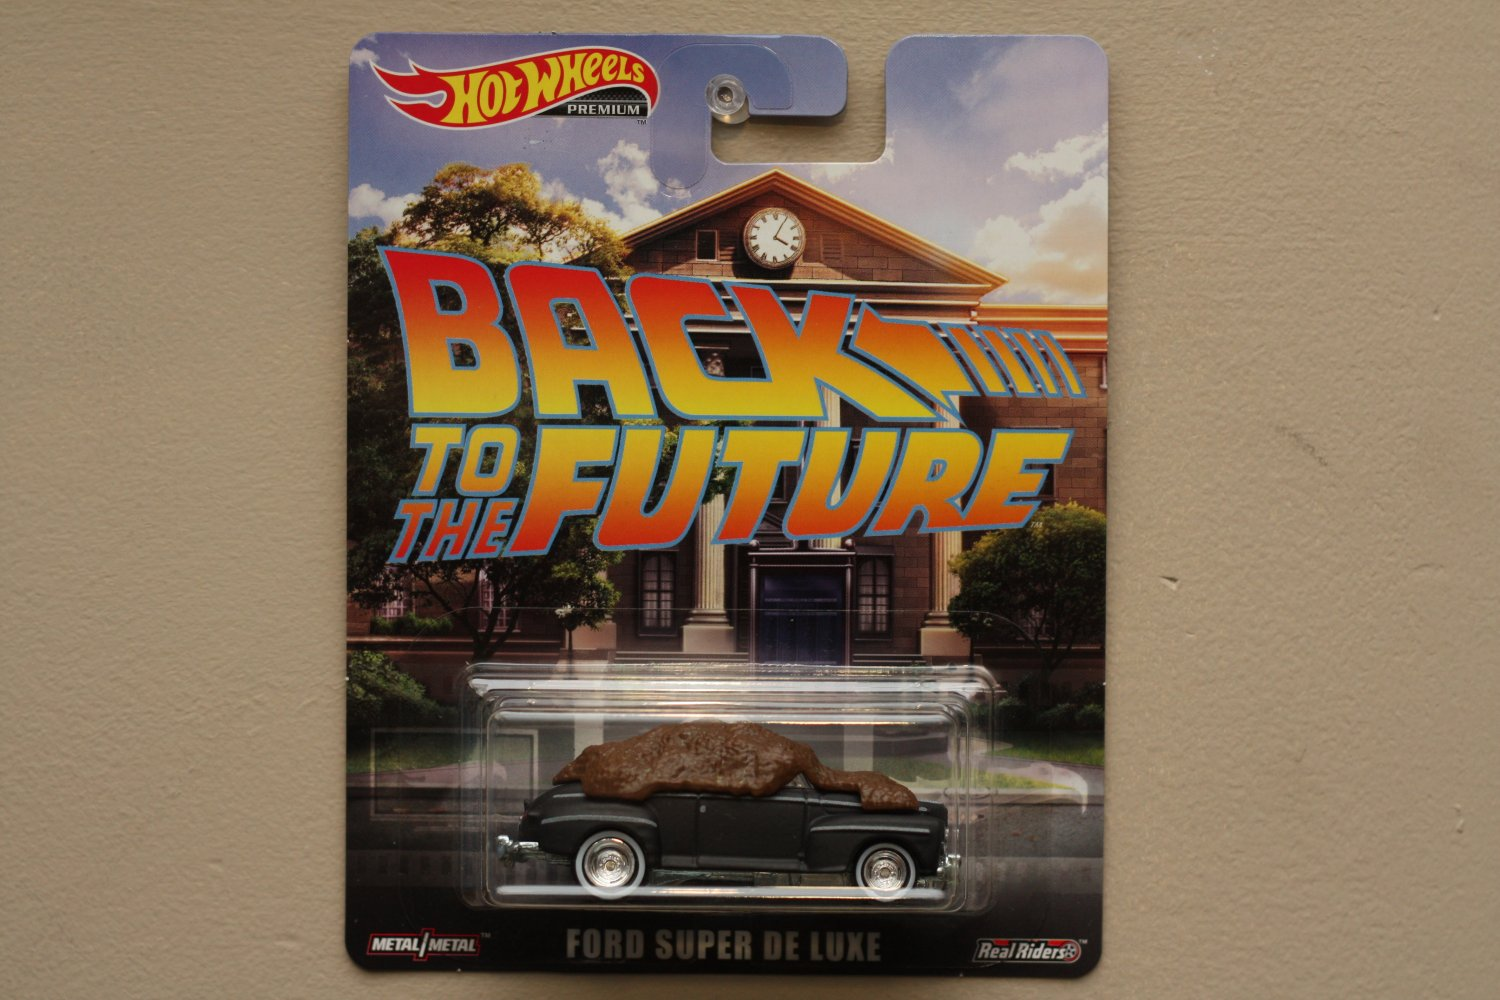 Hot Wheels 2019 Entertainment Back To The Future Ford Super De Luxe